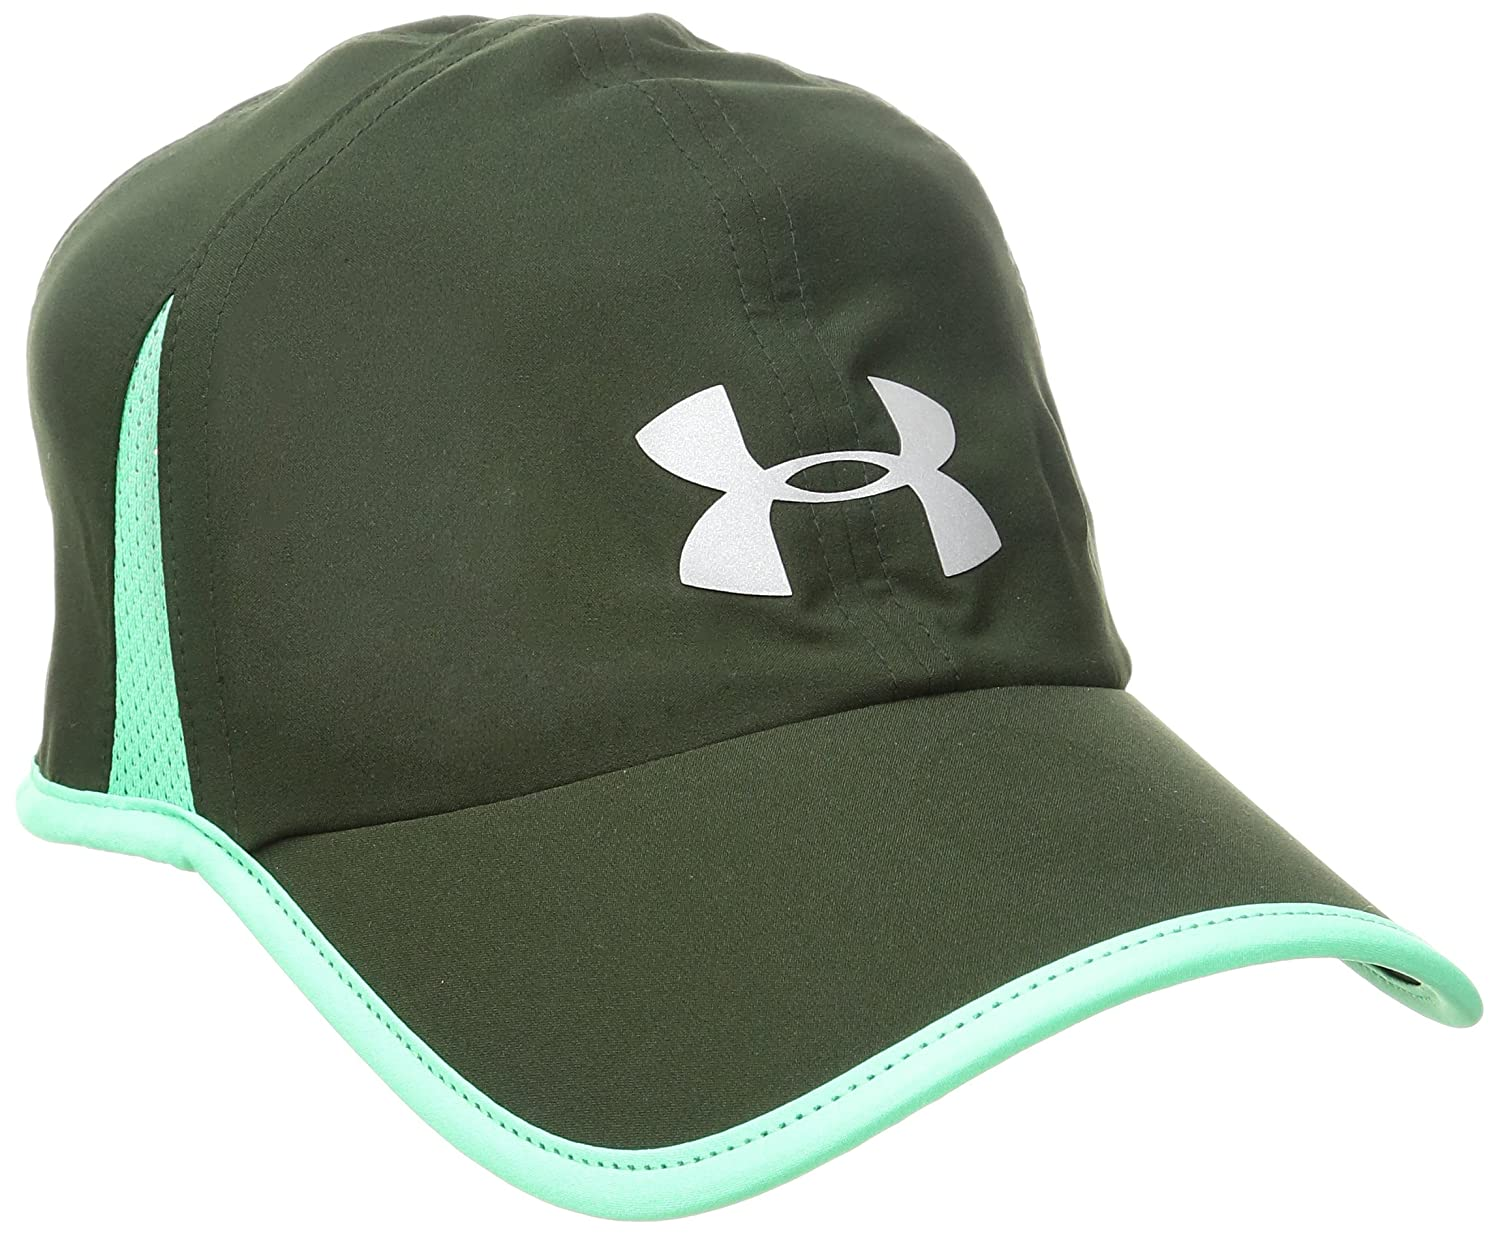 997e4686ec7 Amazon.com  Under Armour Men s Shadow 4.0 Run Cap